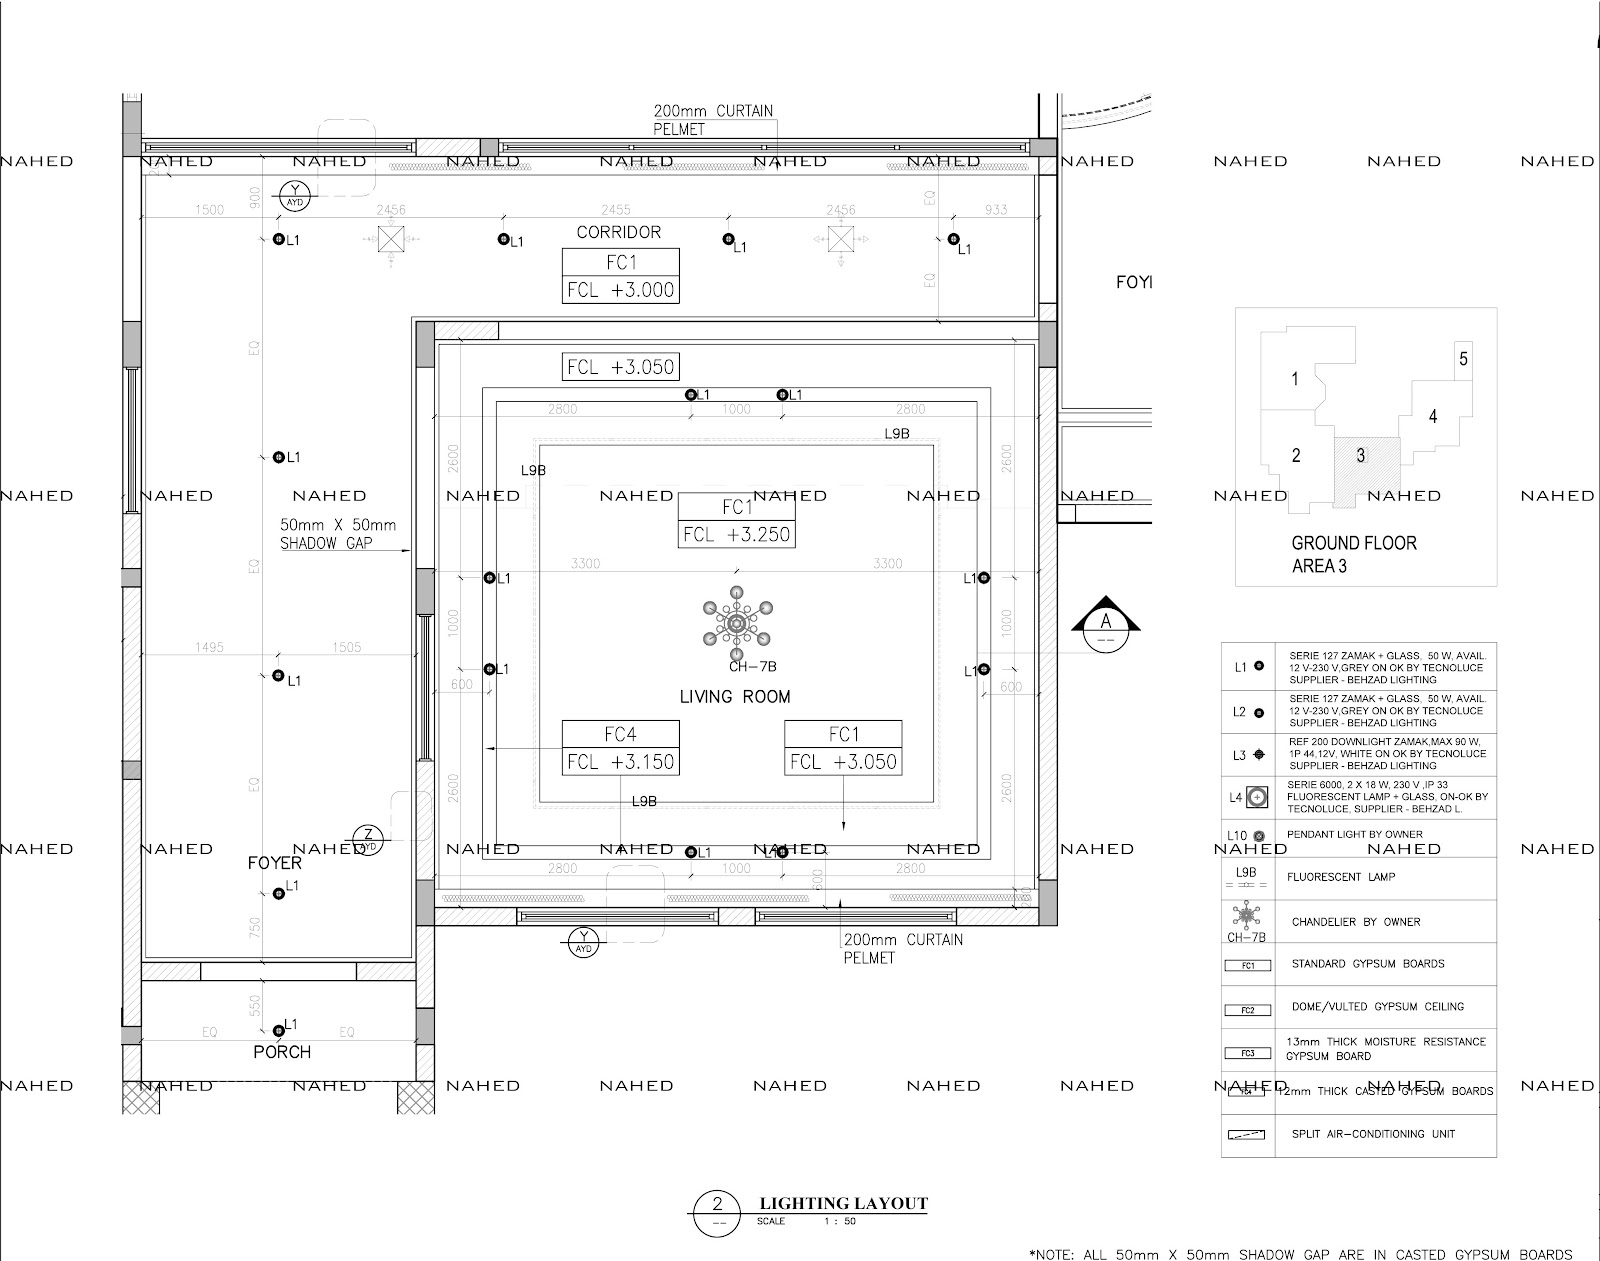 private villa ceiling setout layout (detail/working drawing